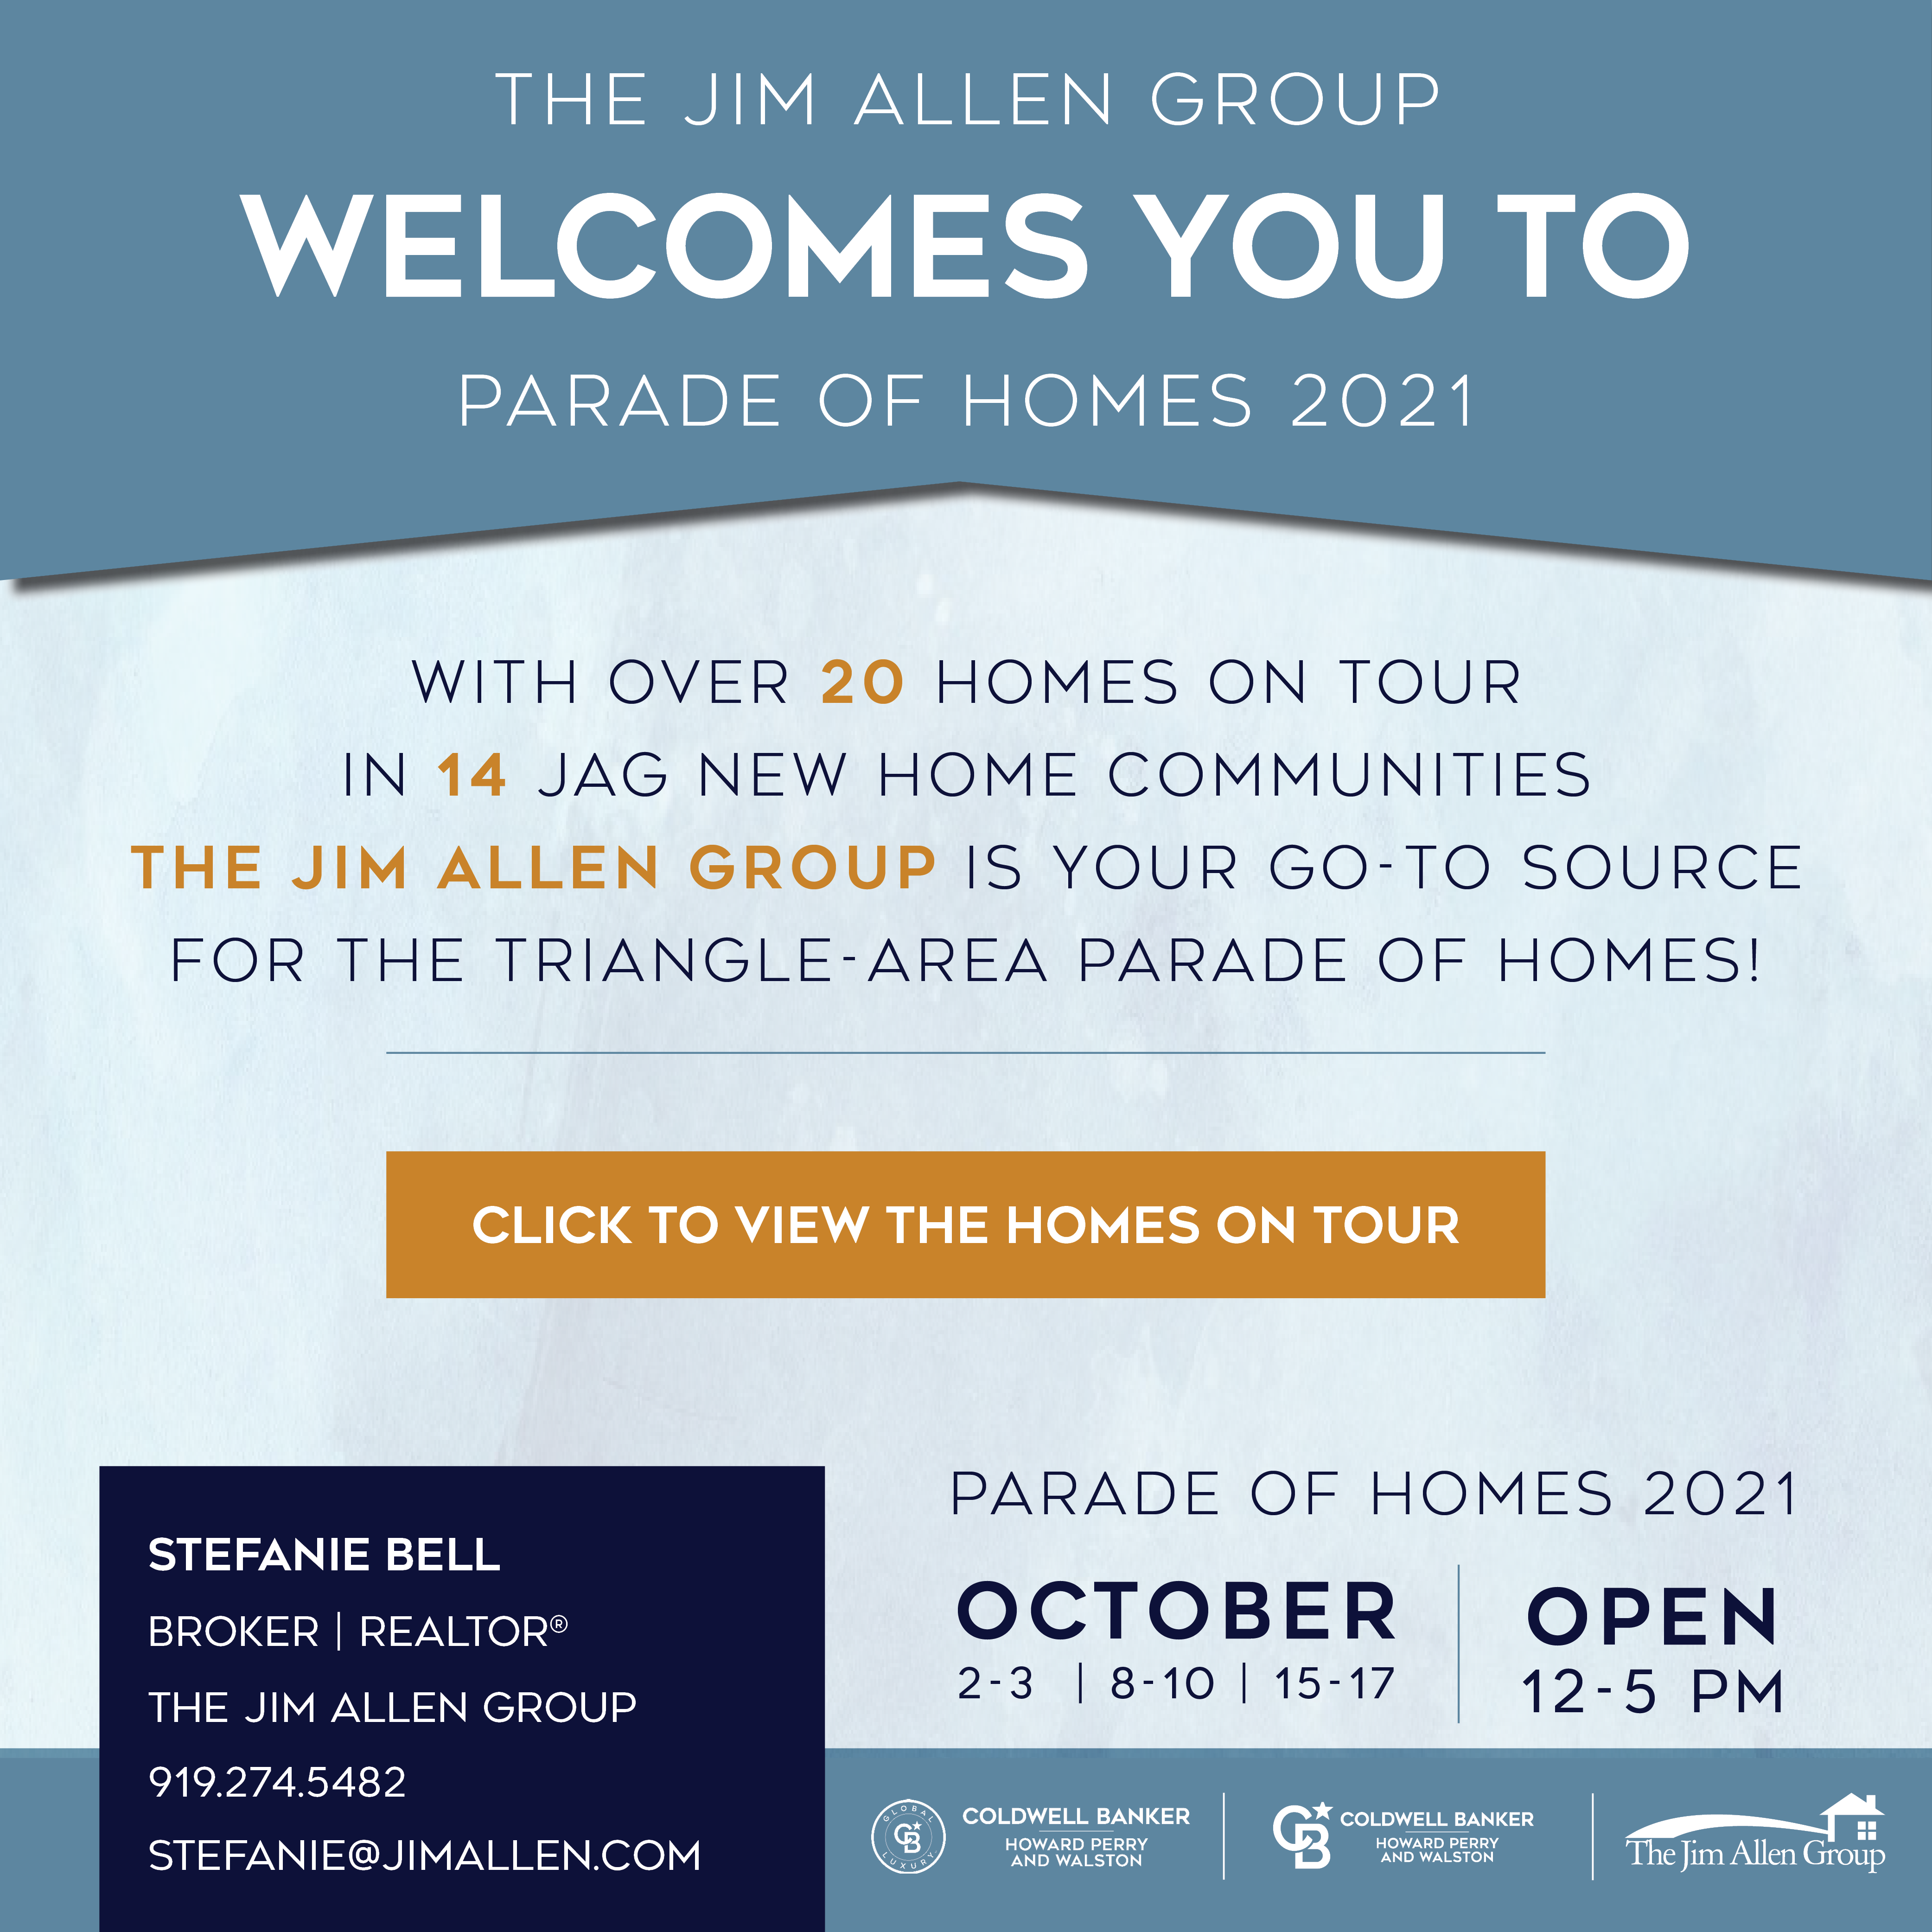 Stefanie Bell | Parade of Homes 2021 | The Jim Allen Group